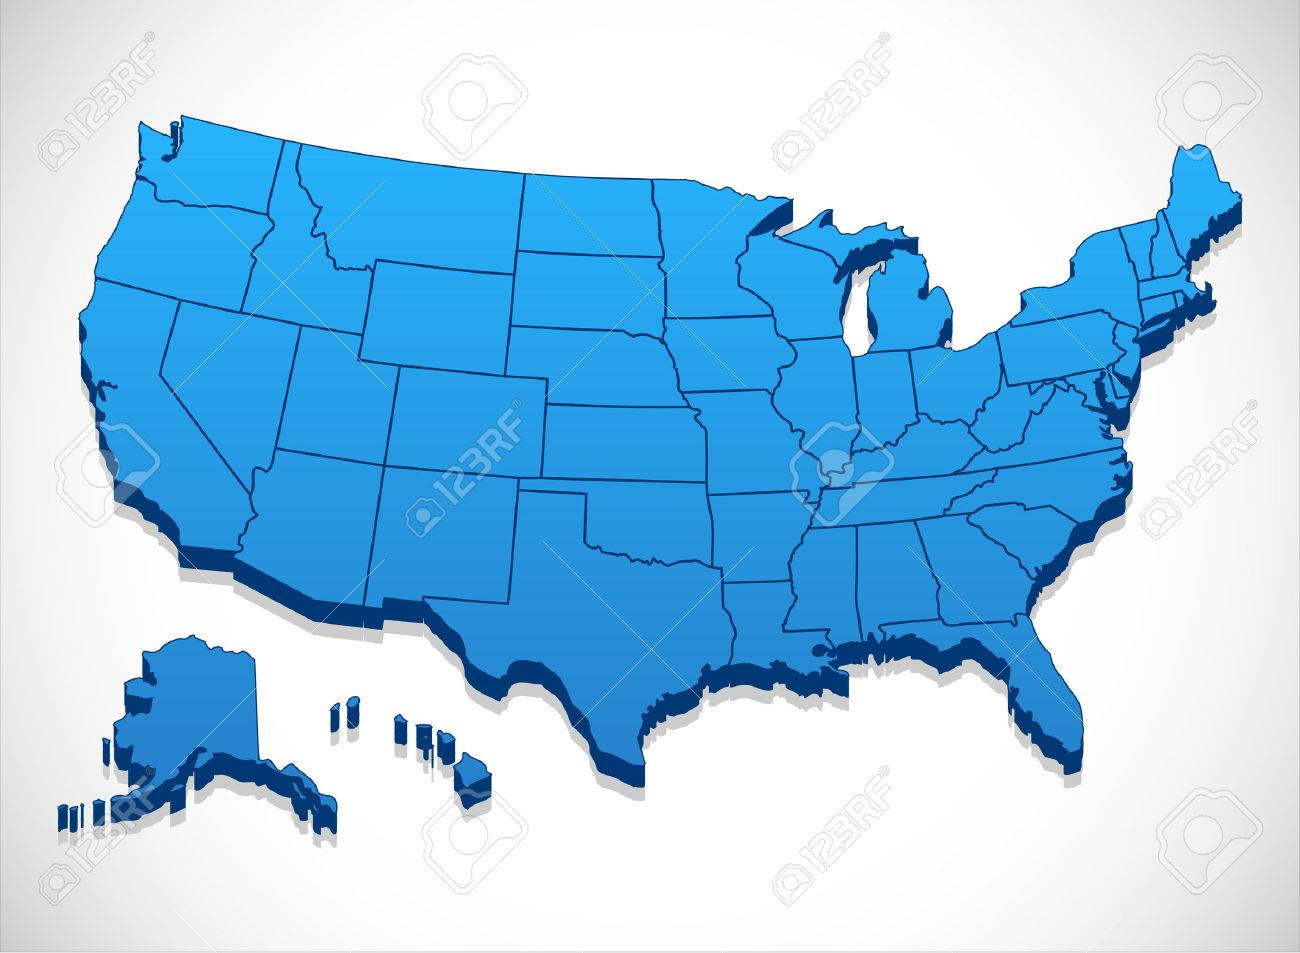 United States Of America Map D Illustration Of United States - Picture of the united states of america map